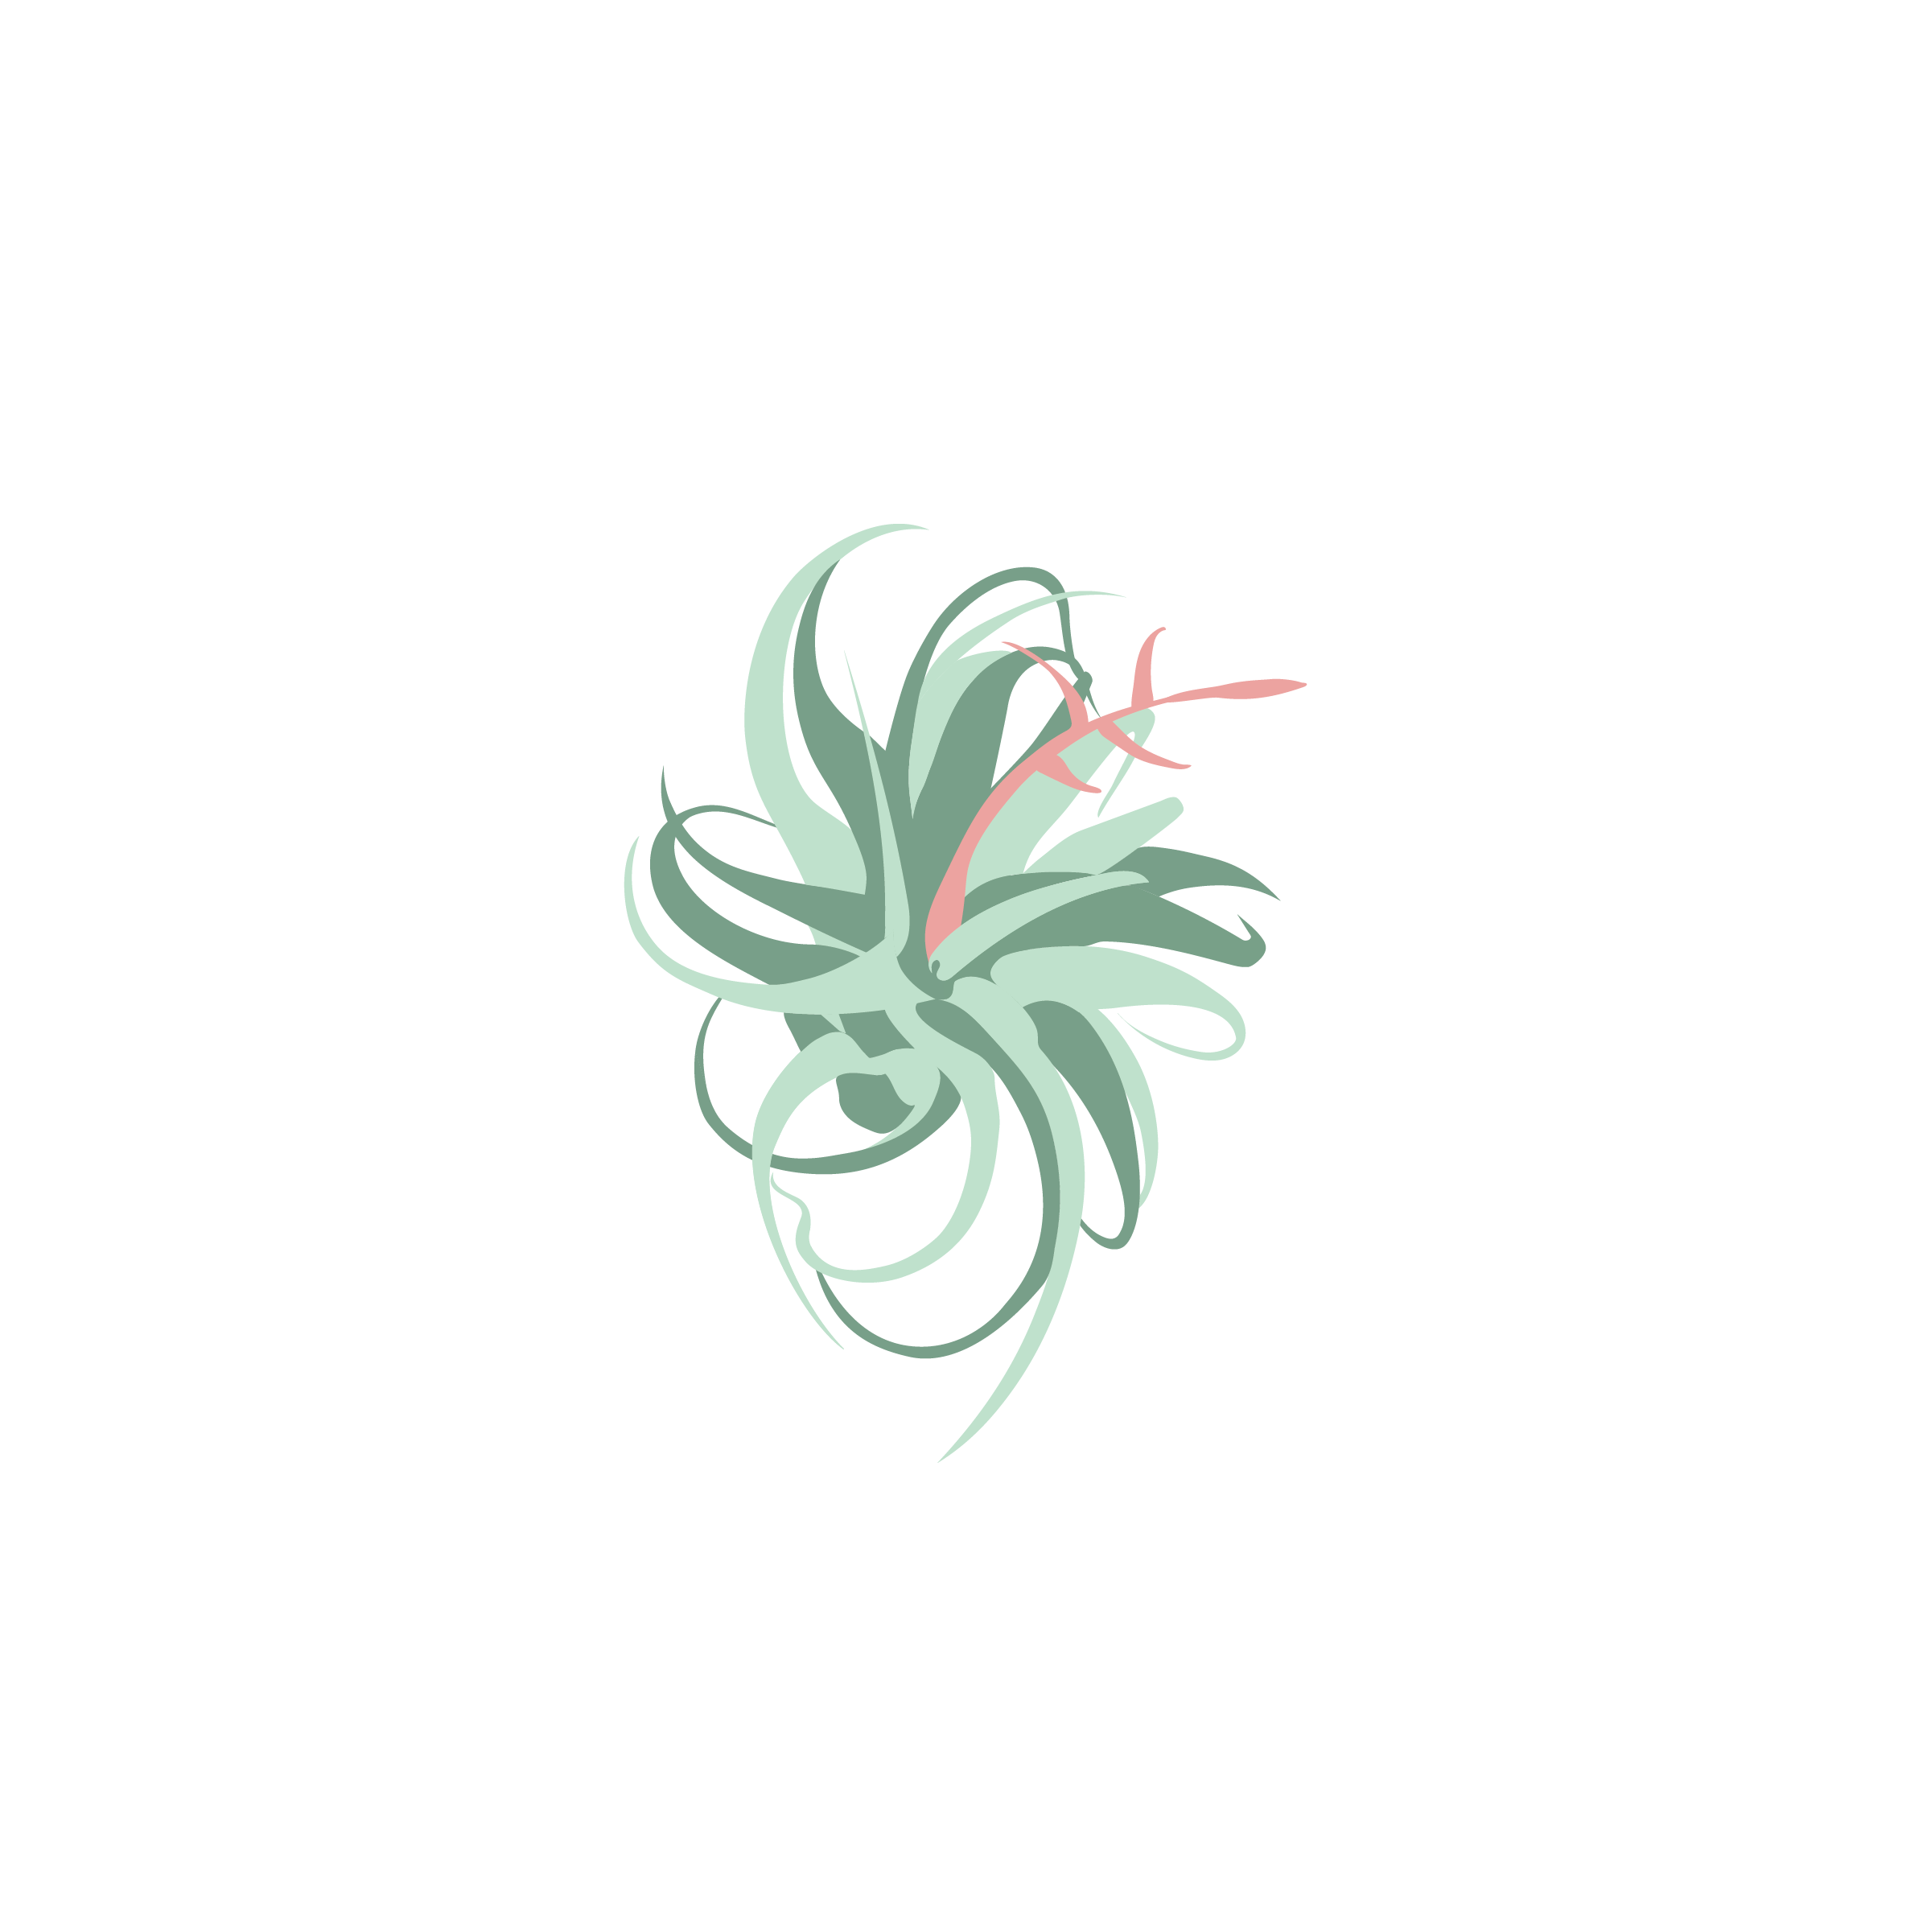 Air Plant City Logo Images-13.png